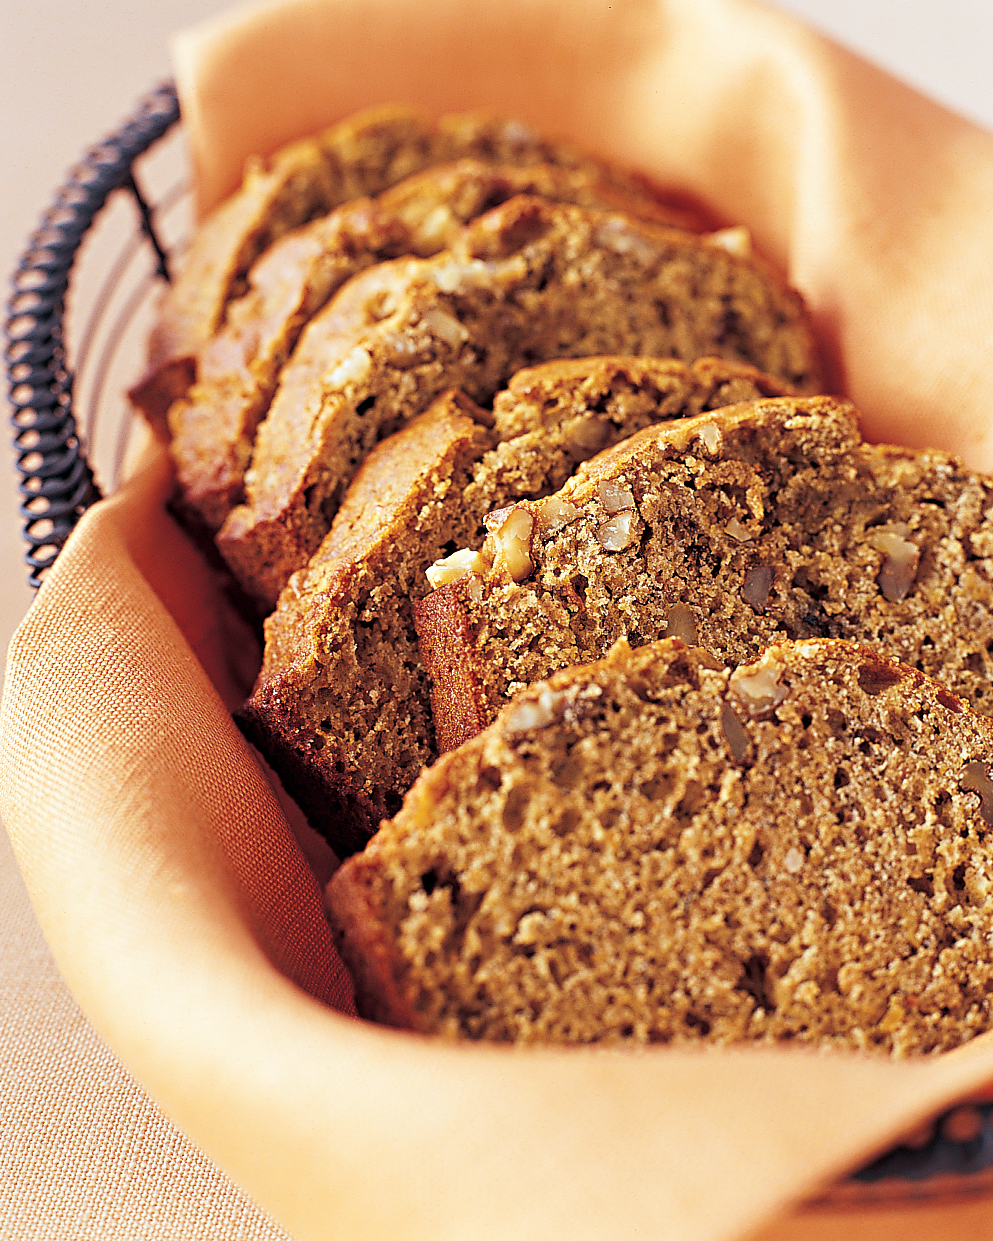 ml0404ftea4_0404_banana_bread_walnuts_flaxseed.jpg